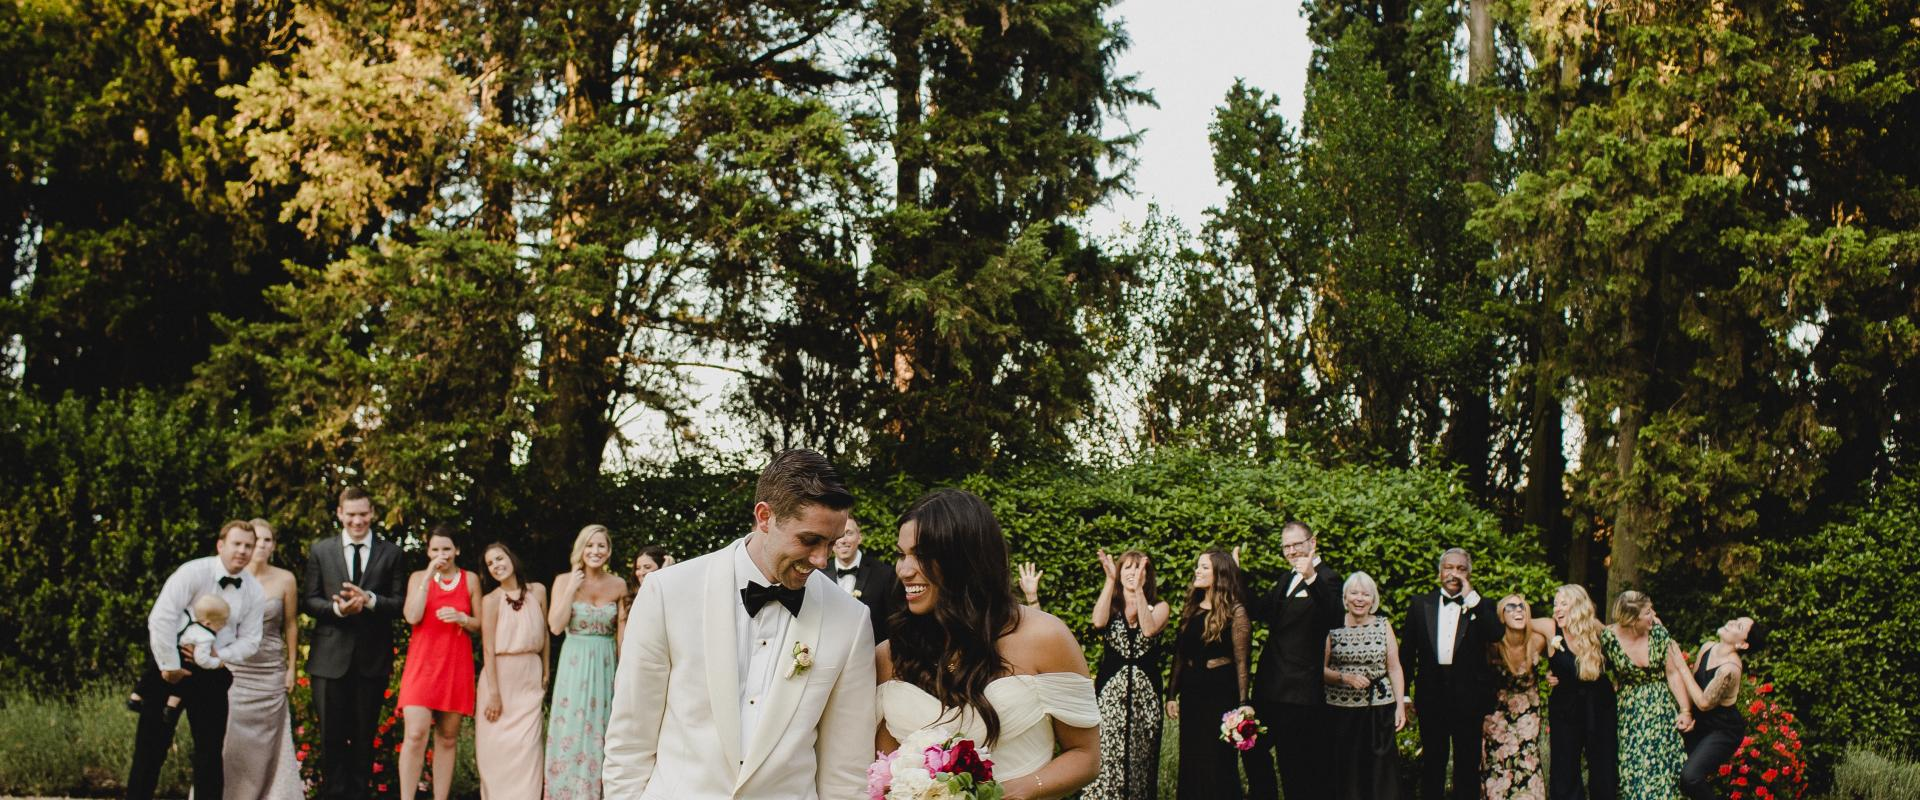 Why More Couples Are Opting for Micro Weddings in 2020